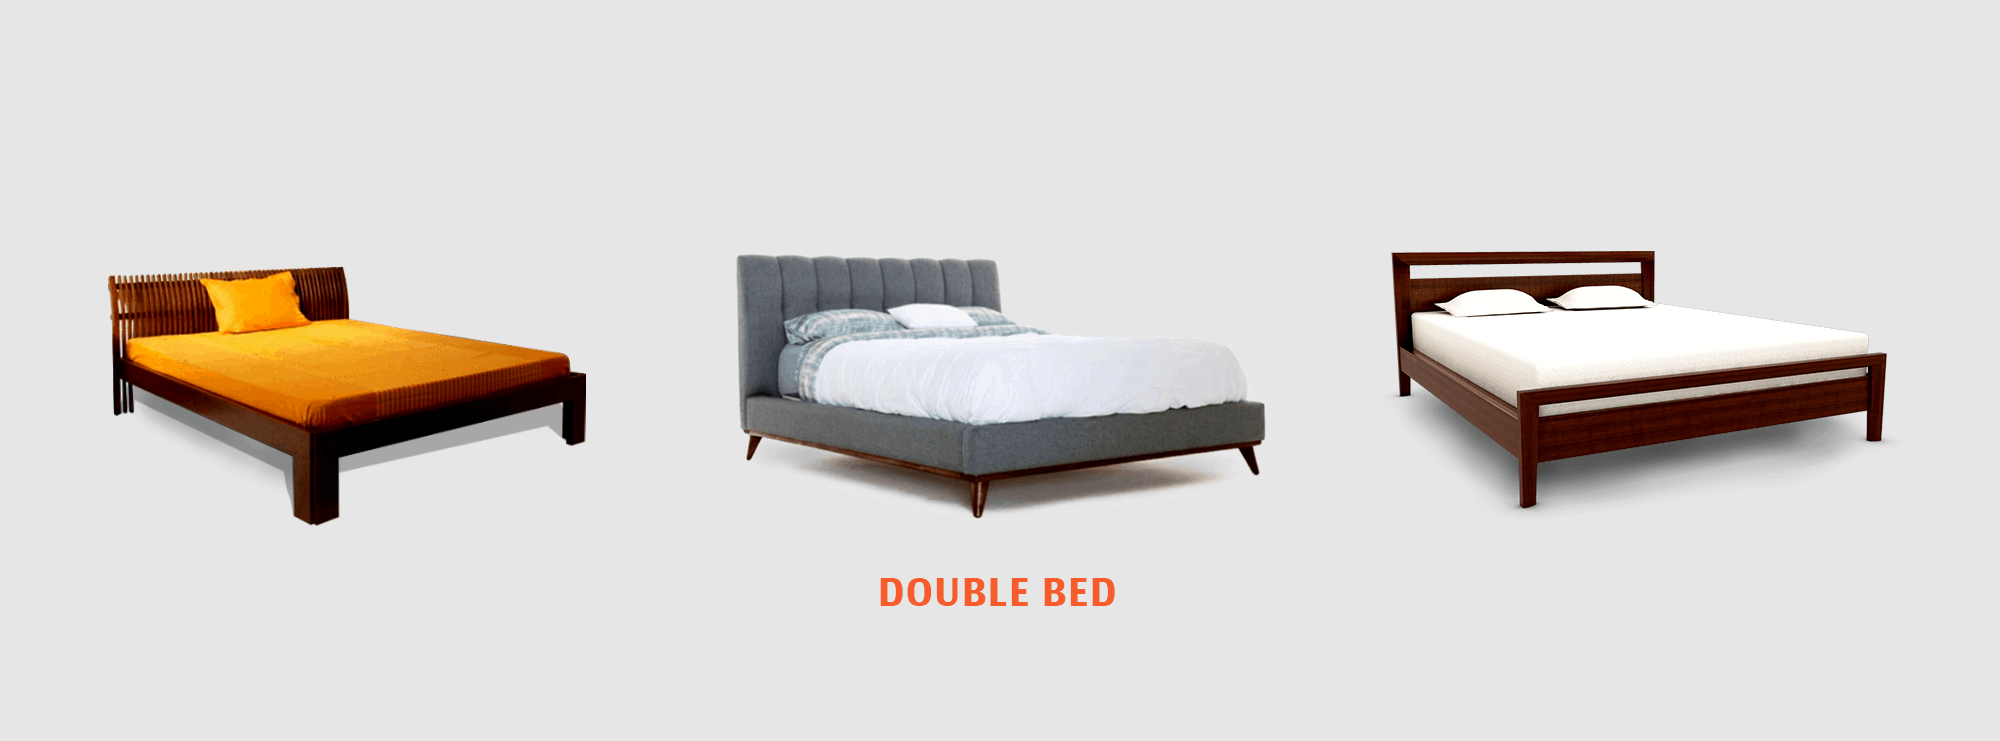 double-bed Chennai